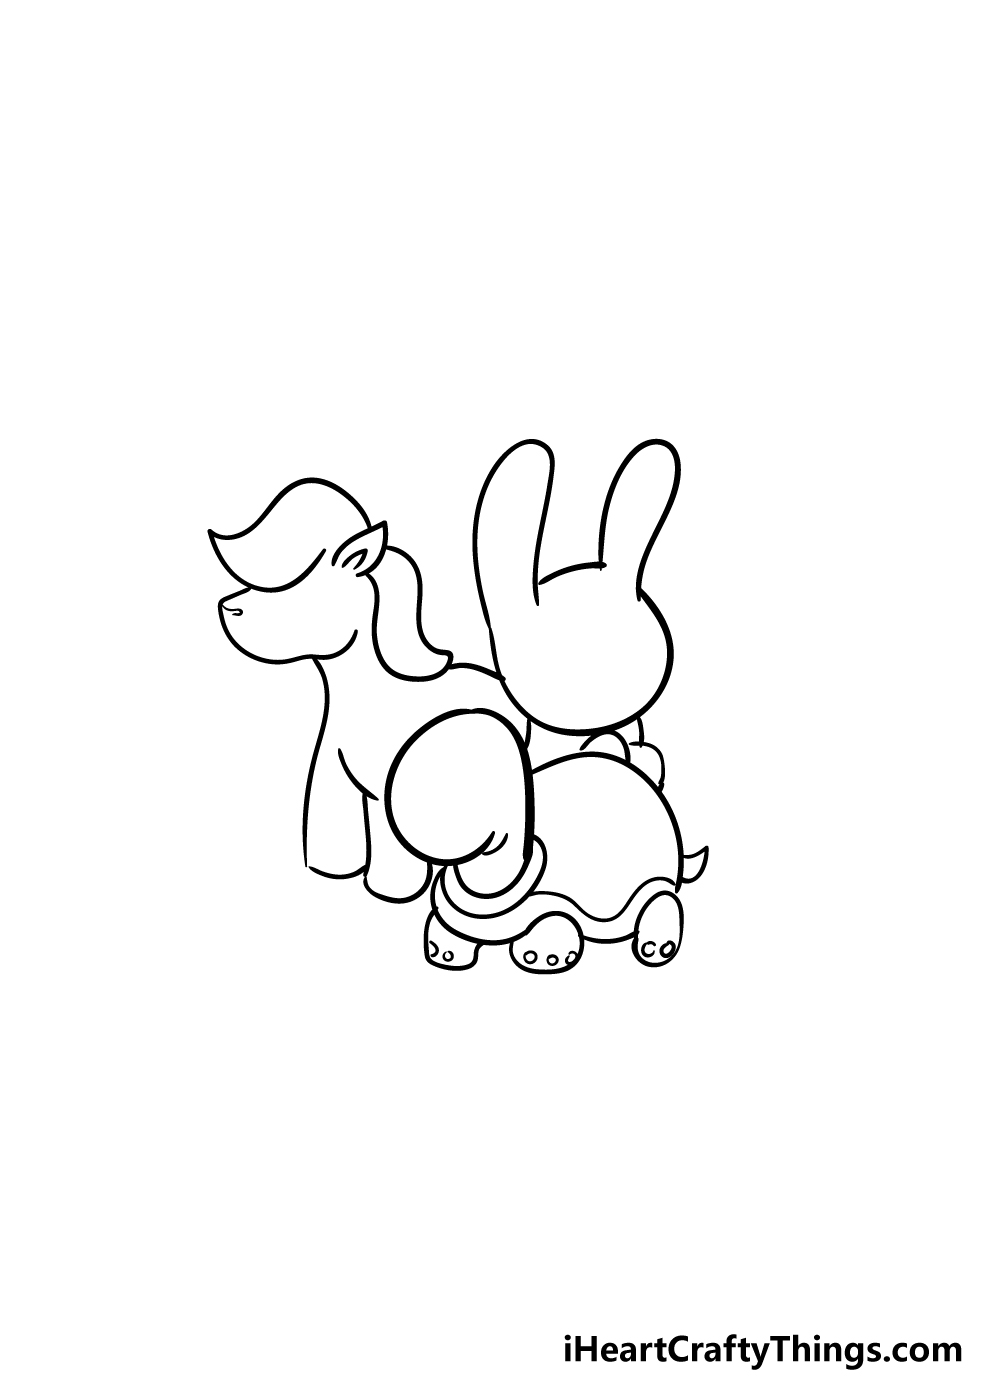 cute animals drawing step 5